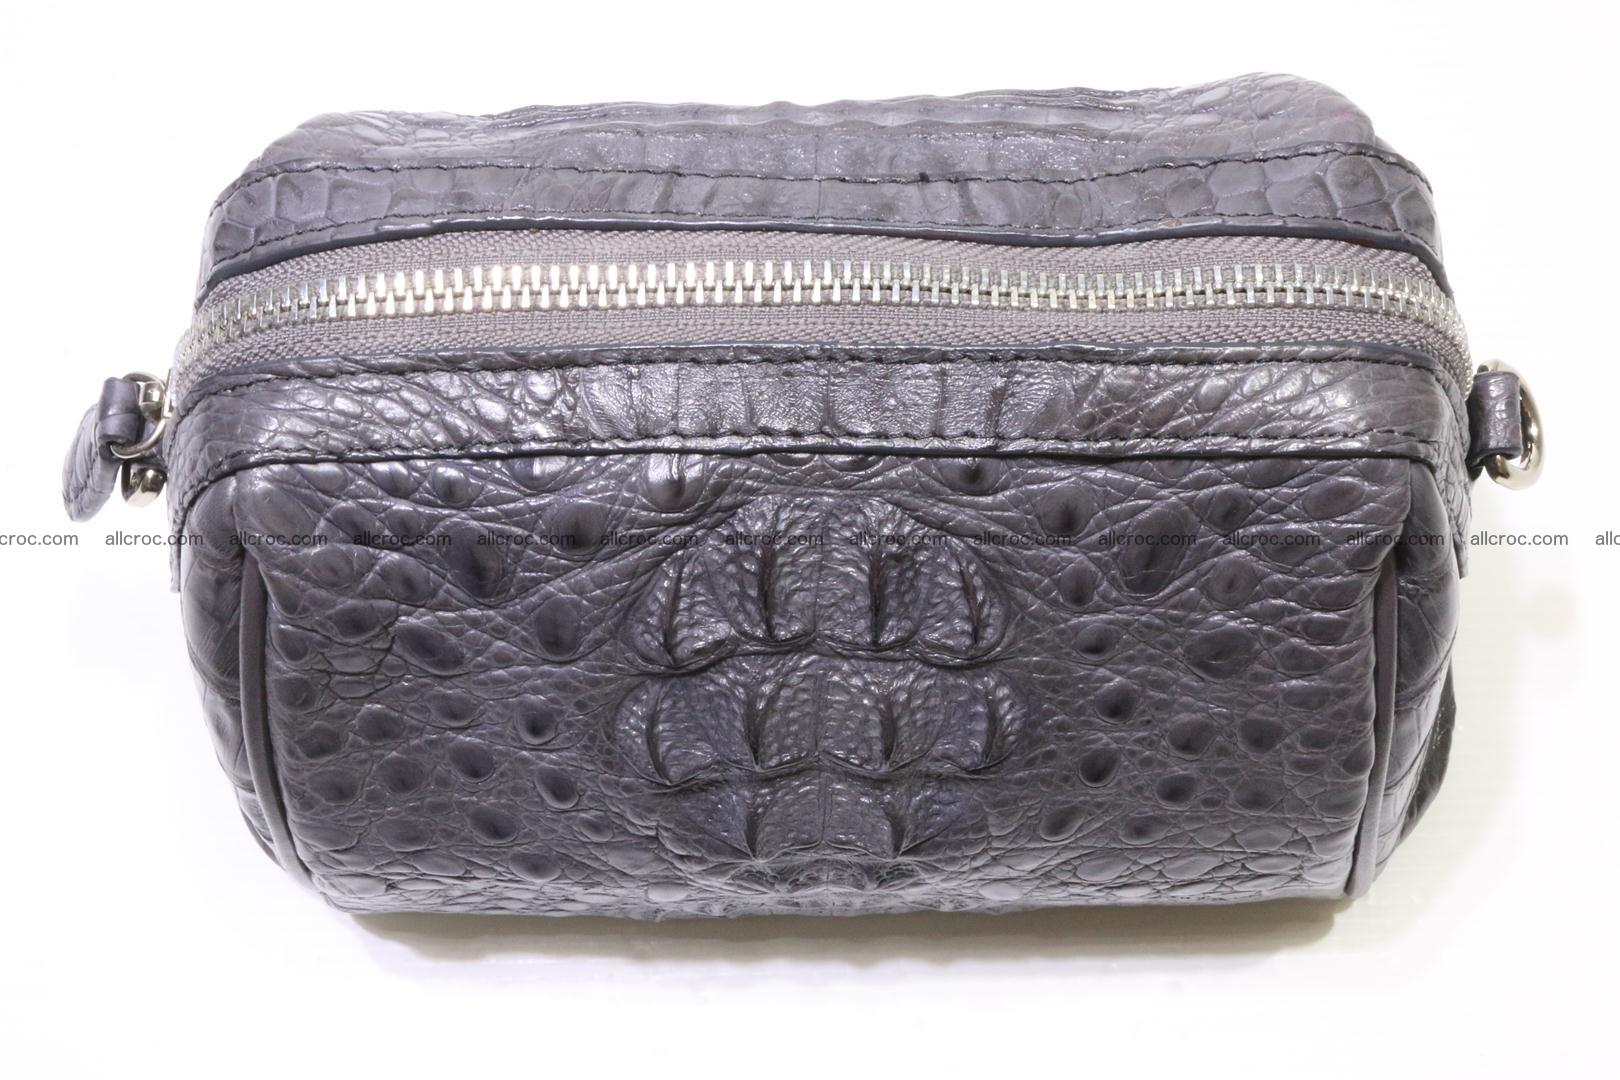 women's crocodile bag 038 Foto 2